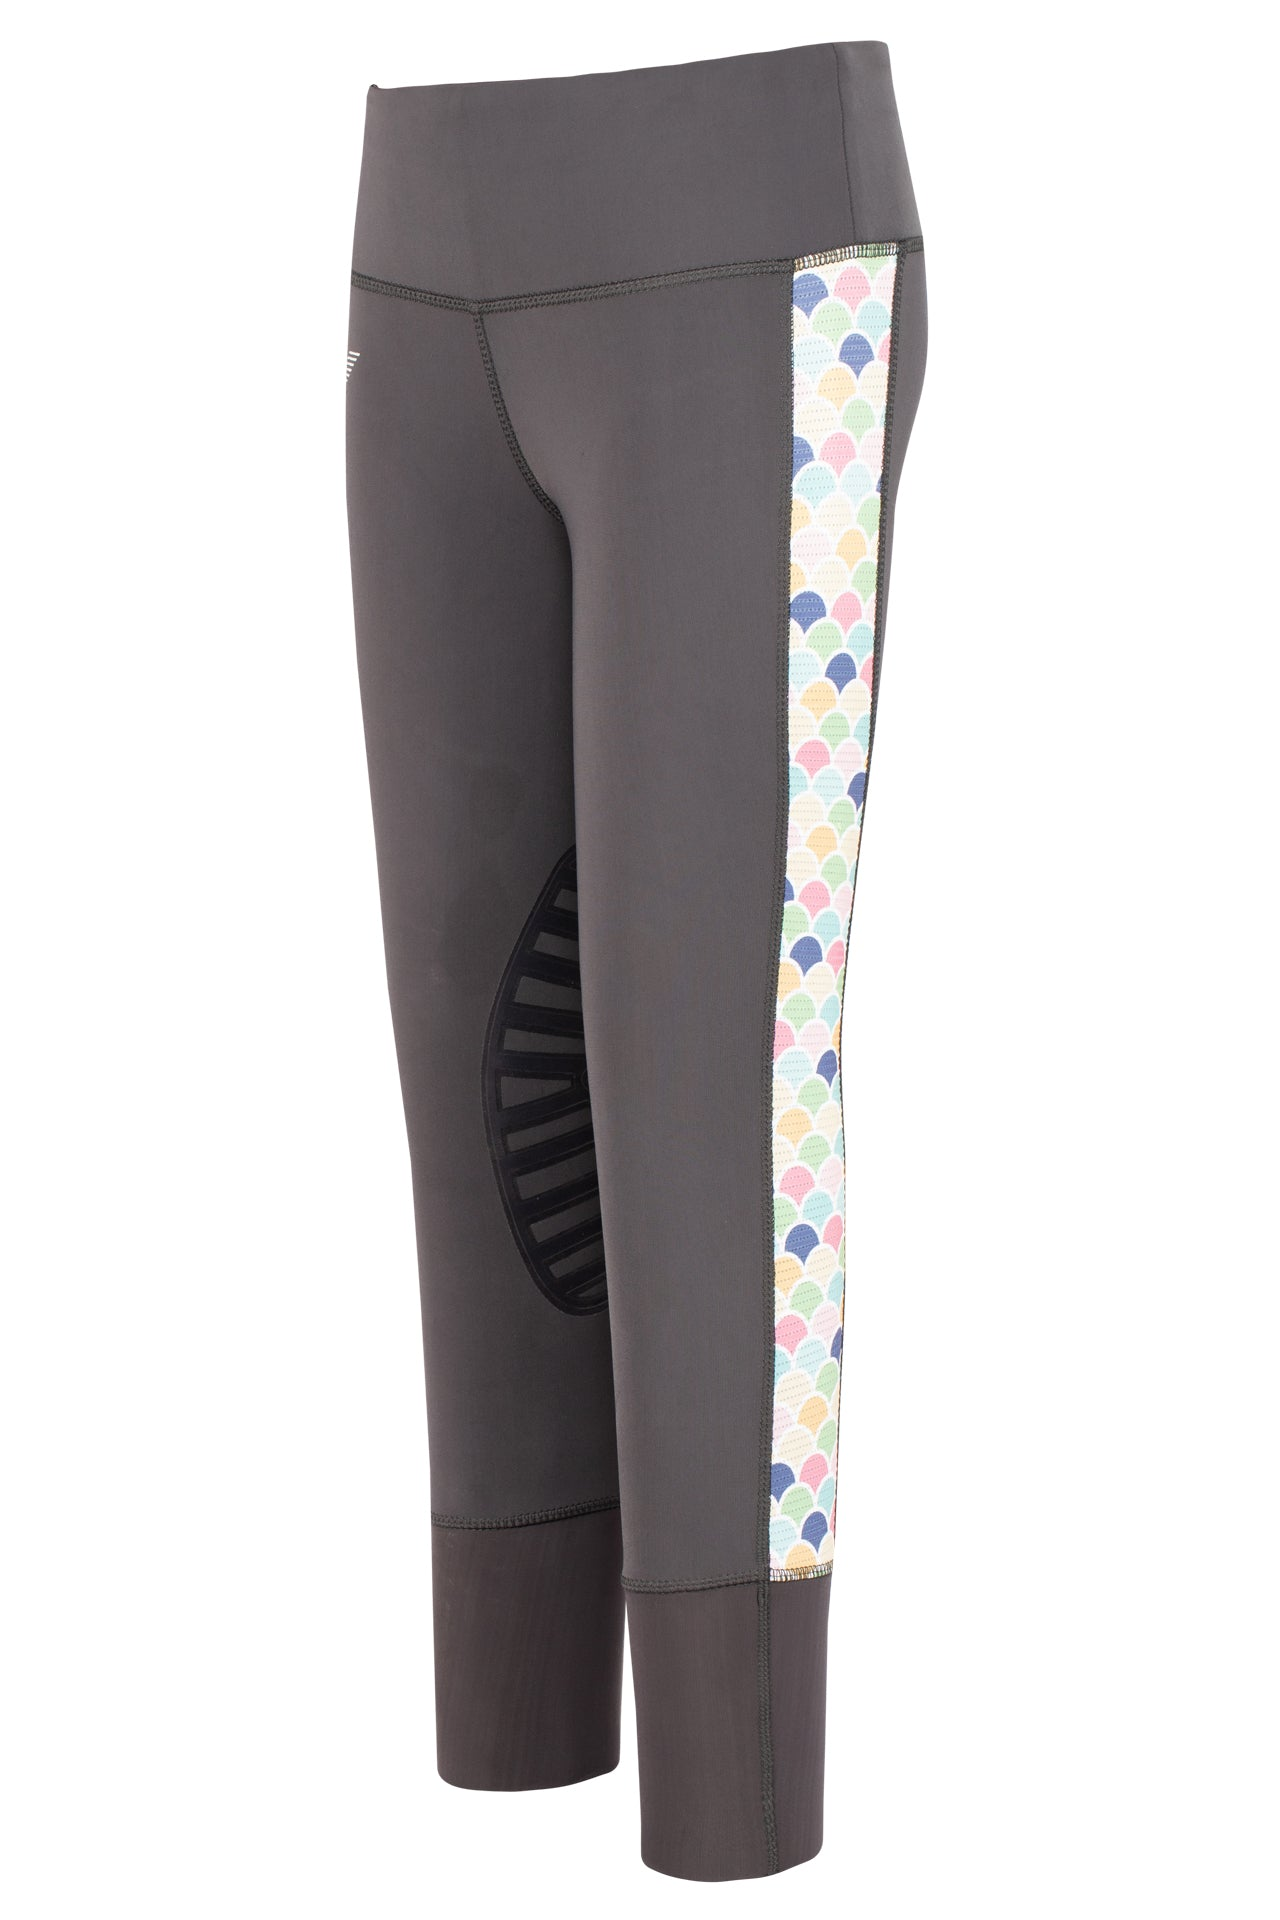 TuffRider Children's Iris EquiCool Riding Tights_1